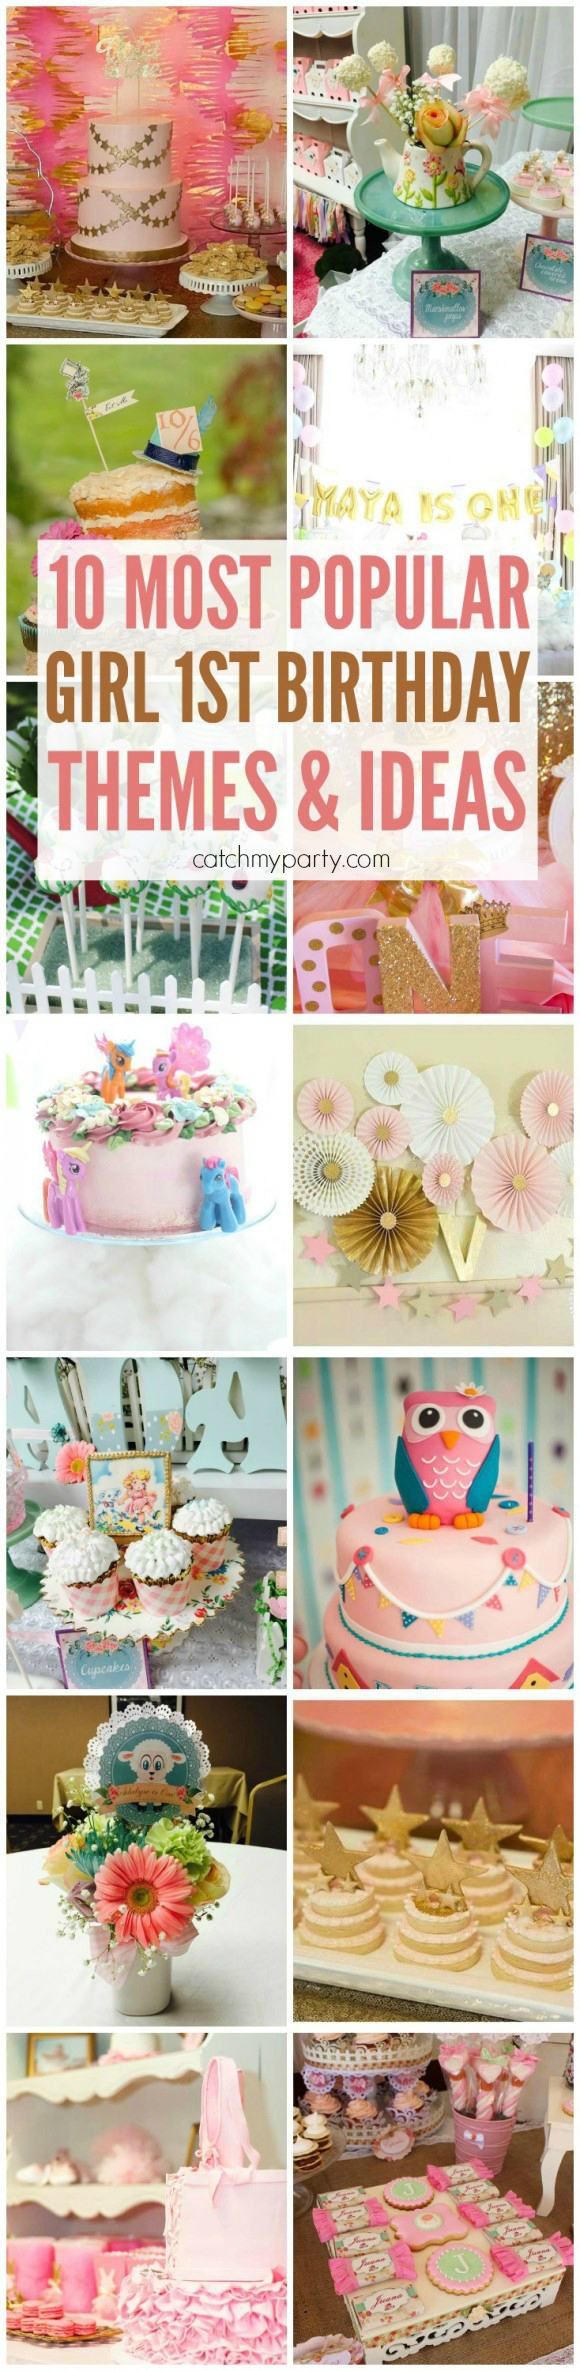 ... the 10 most popular girl 1st birthday themes & ideas on our site